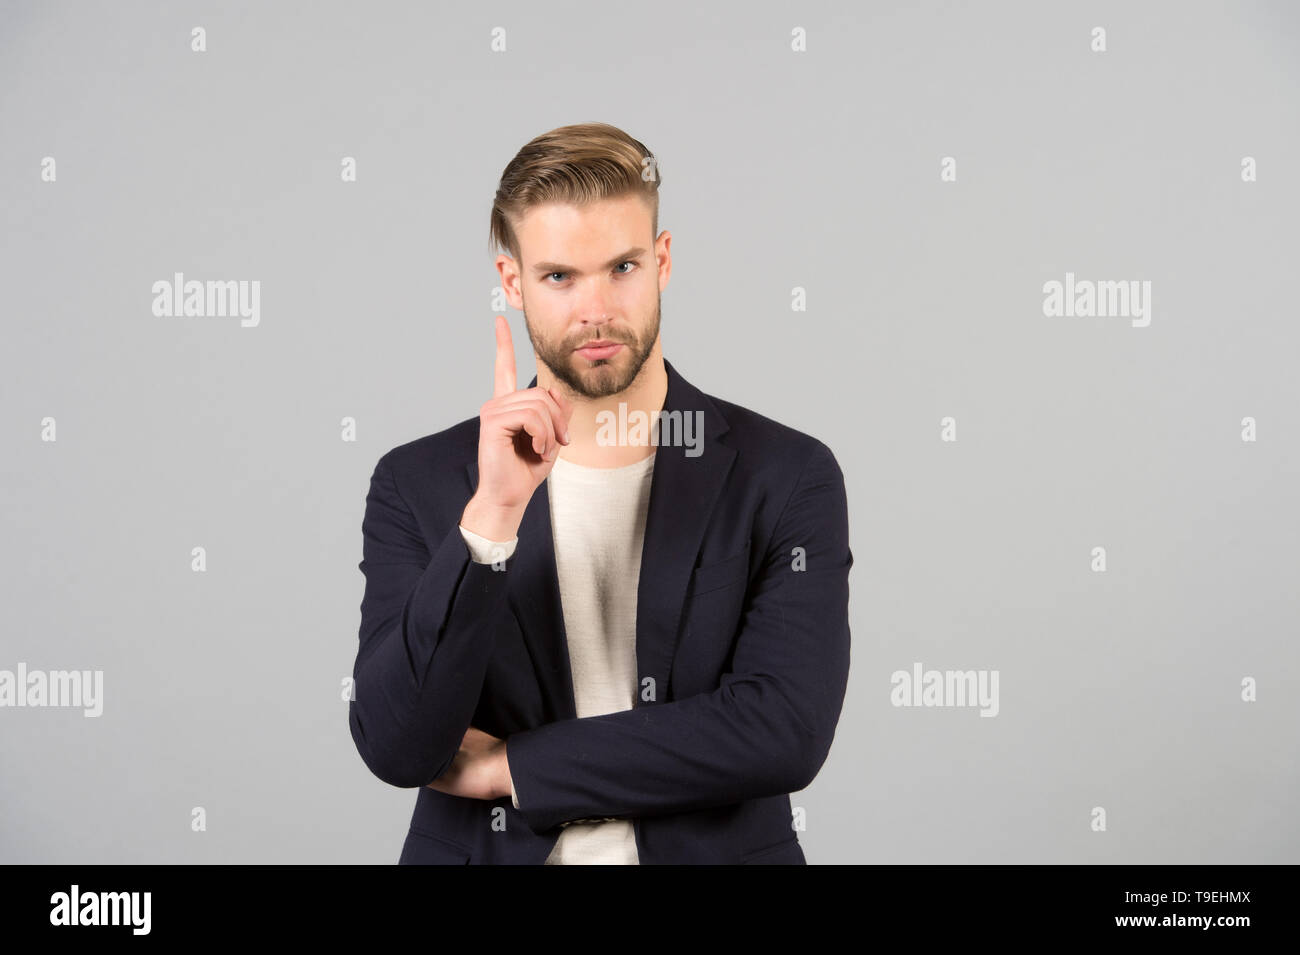 Guy bearded attractive shows warning gesture. Attention concept. Man with beard unshaven guy looks handsome well groomed formal wear. Businessman bear - Stock Image